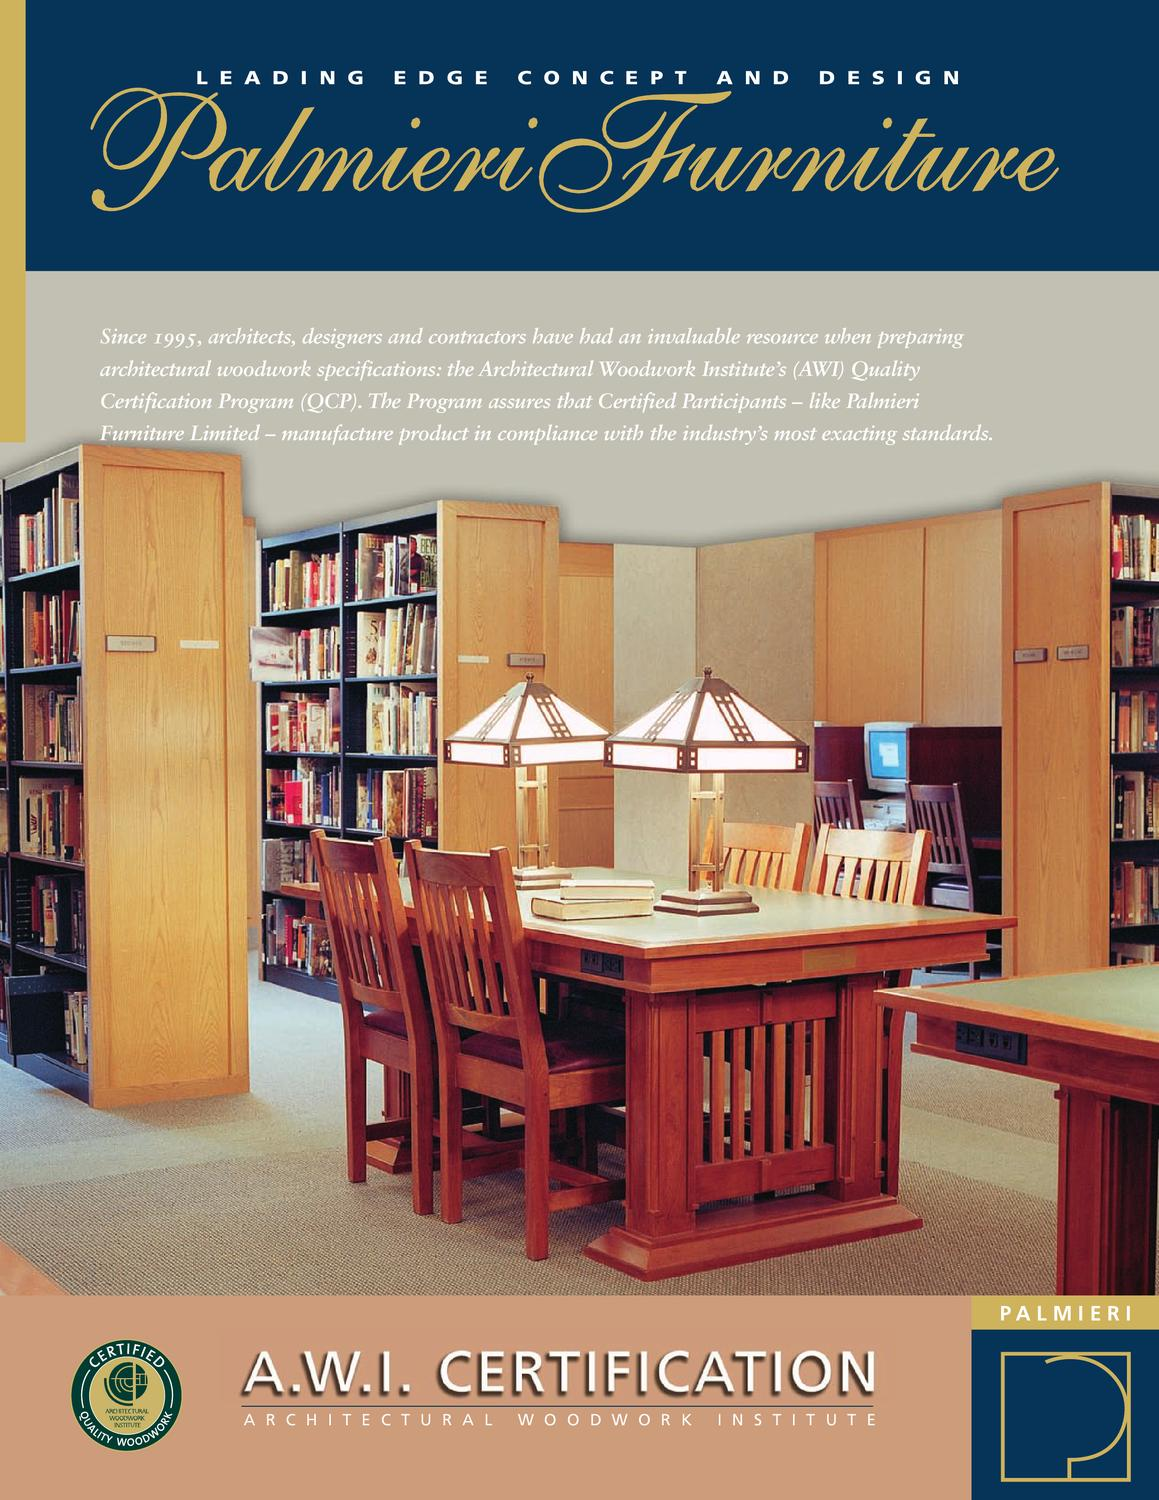 Awi Certification For Palmieri Library Furniture By Anthony